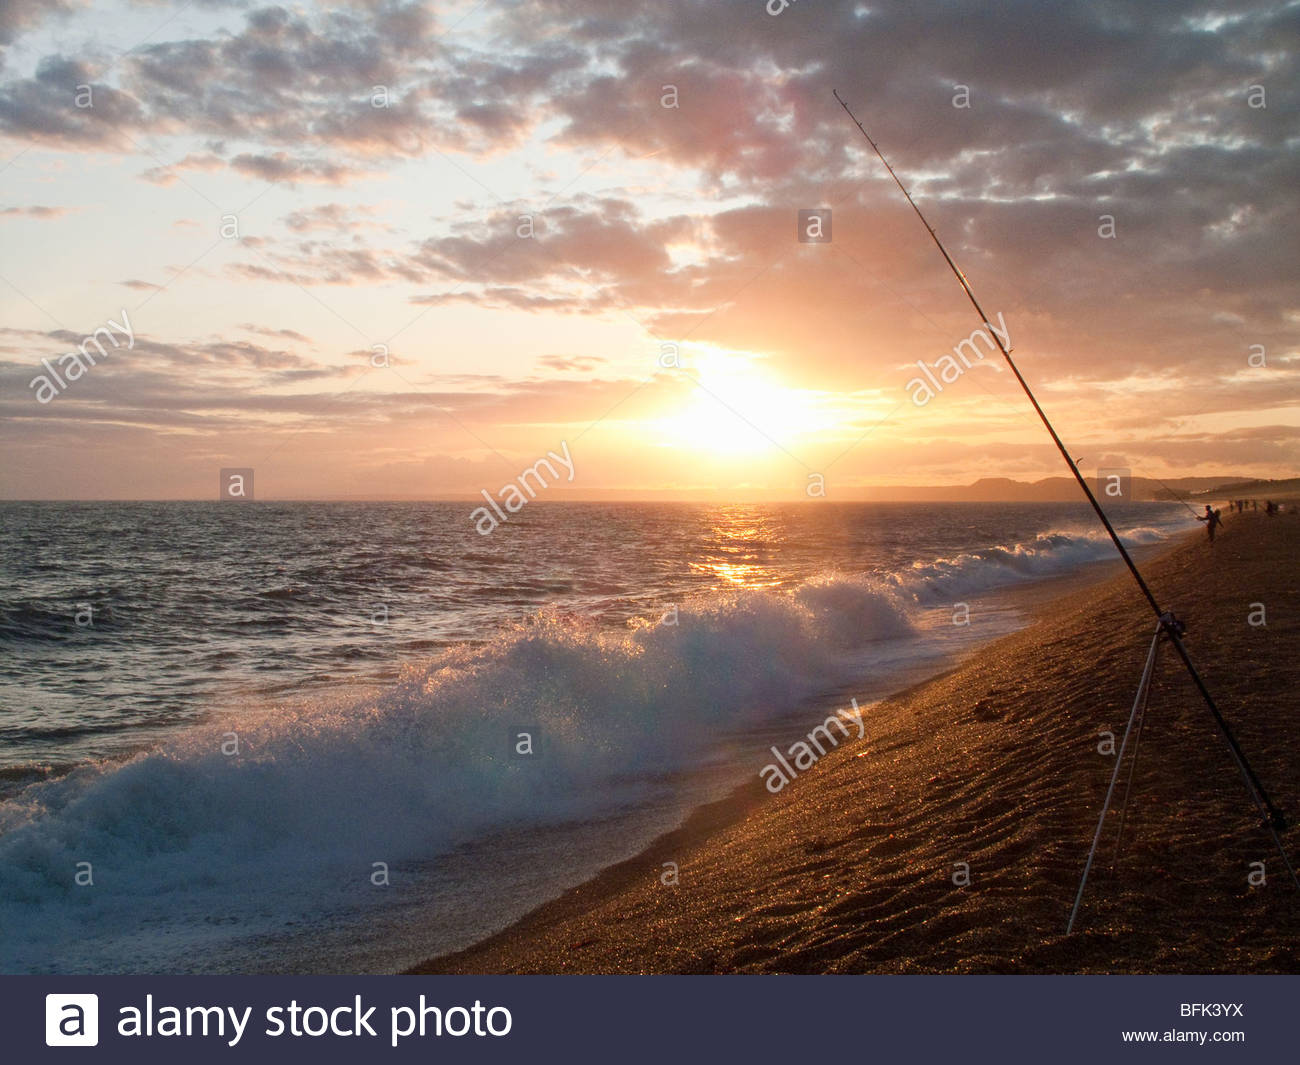 Tranquil sun setting on horizon over ocean with fishing rod in foreground - Stock Image